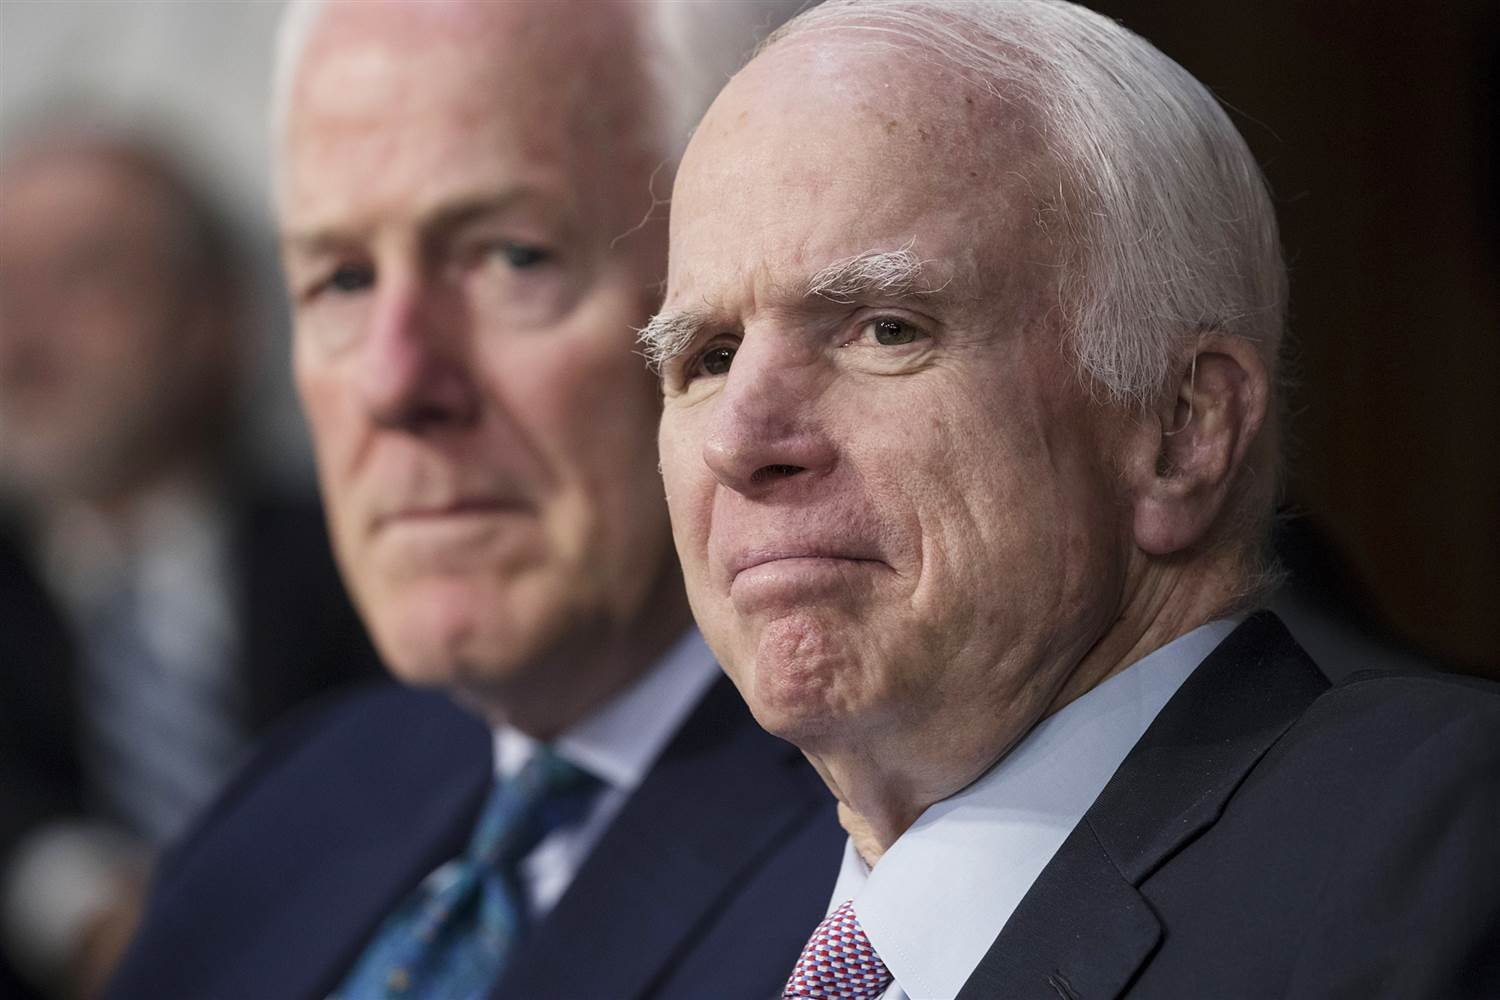 Sen. John McCain, R-Ariz., right, with Sen. John Cornyn, R-Texas, listens as Attorney General Jeff Sessions testifies on Capitol Hill in Washington on June 13, 2017. (J. Scott Applewhite / AP file)